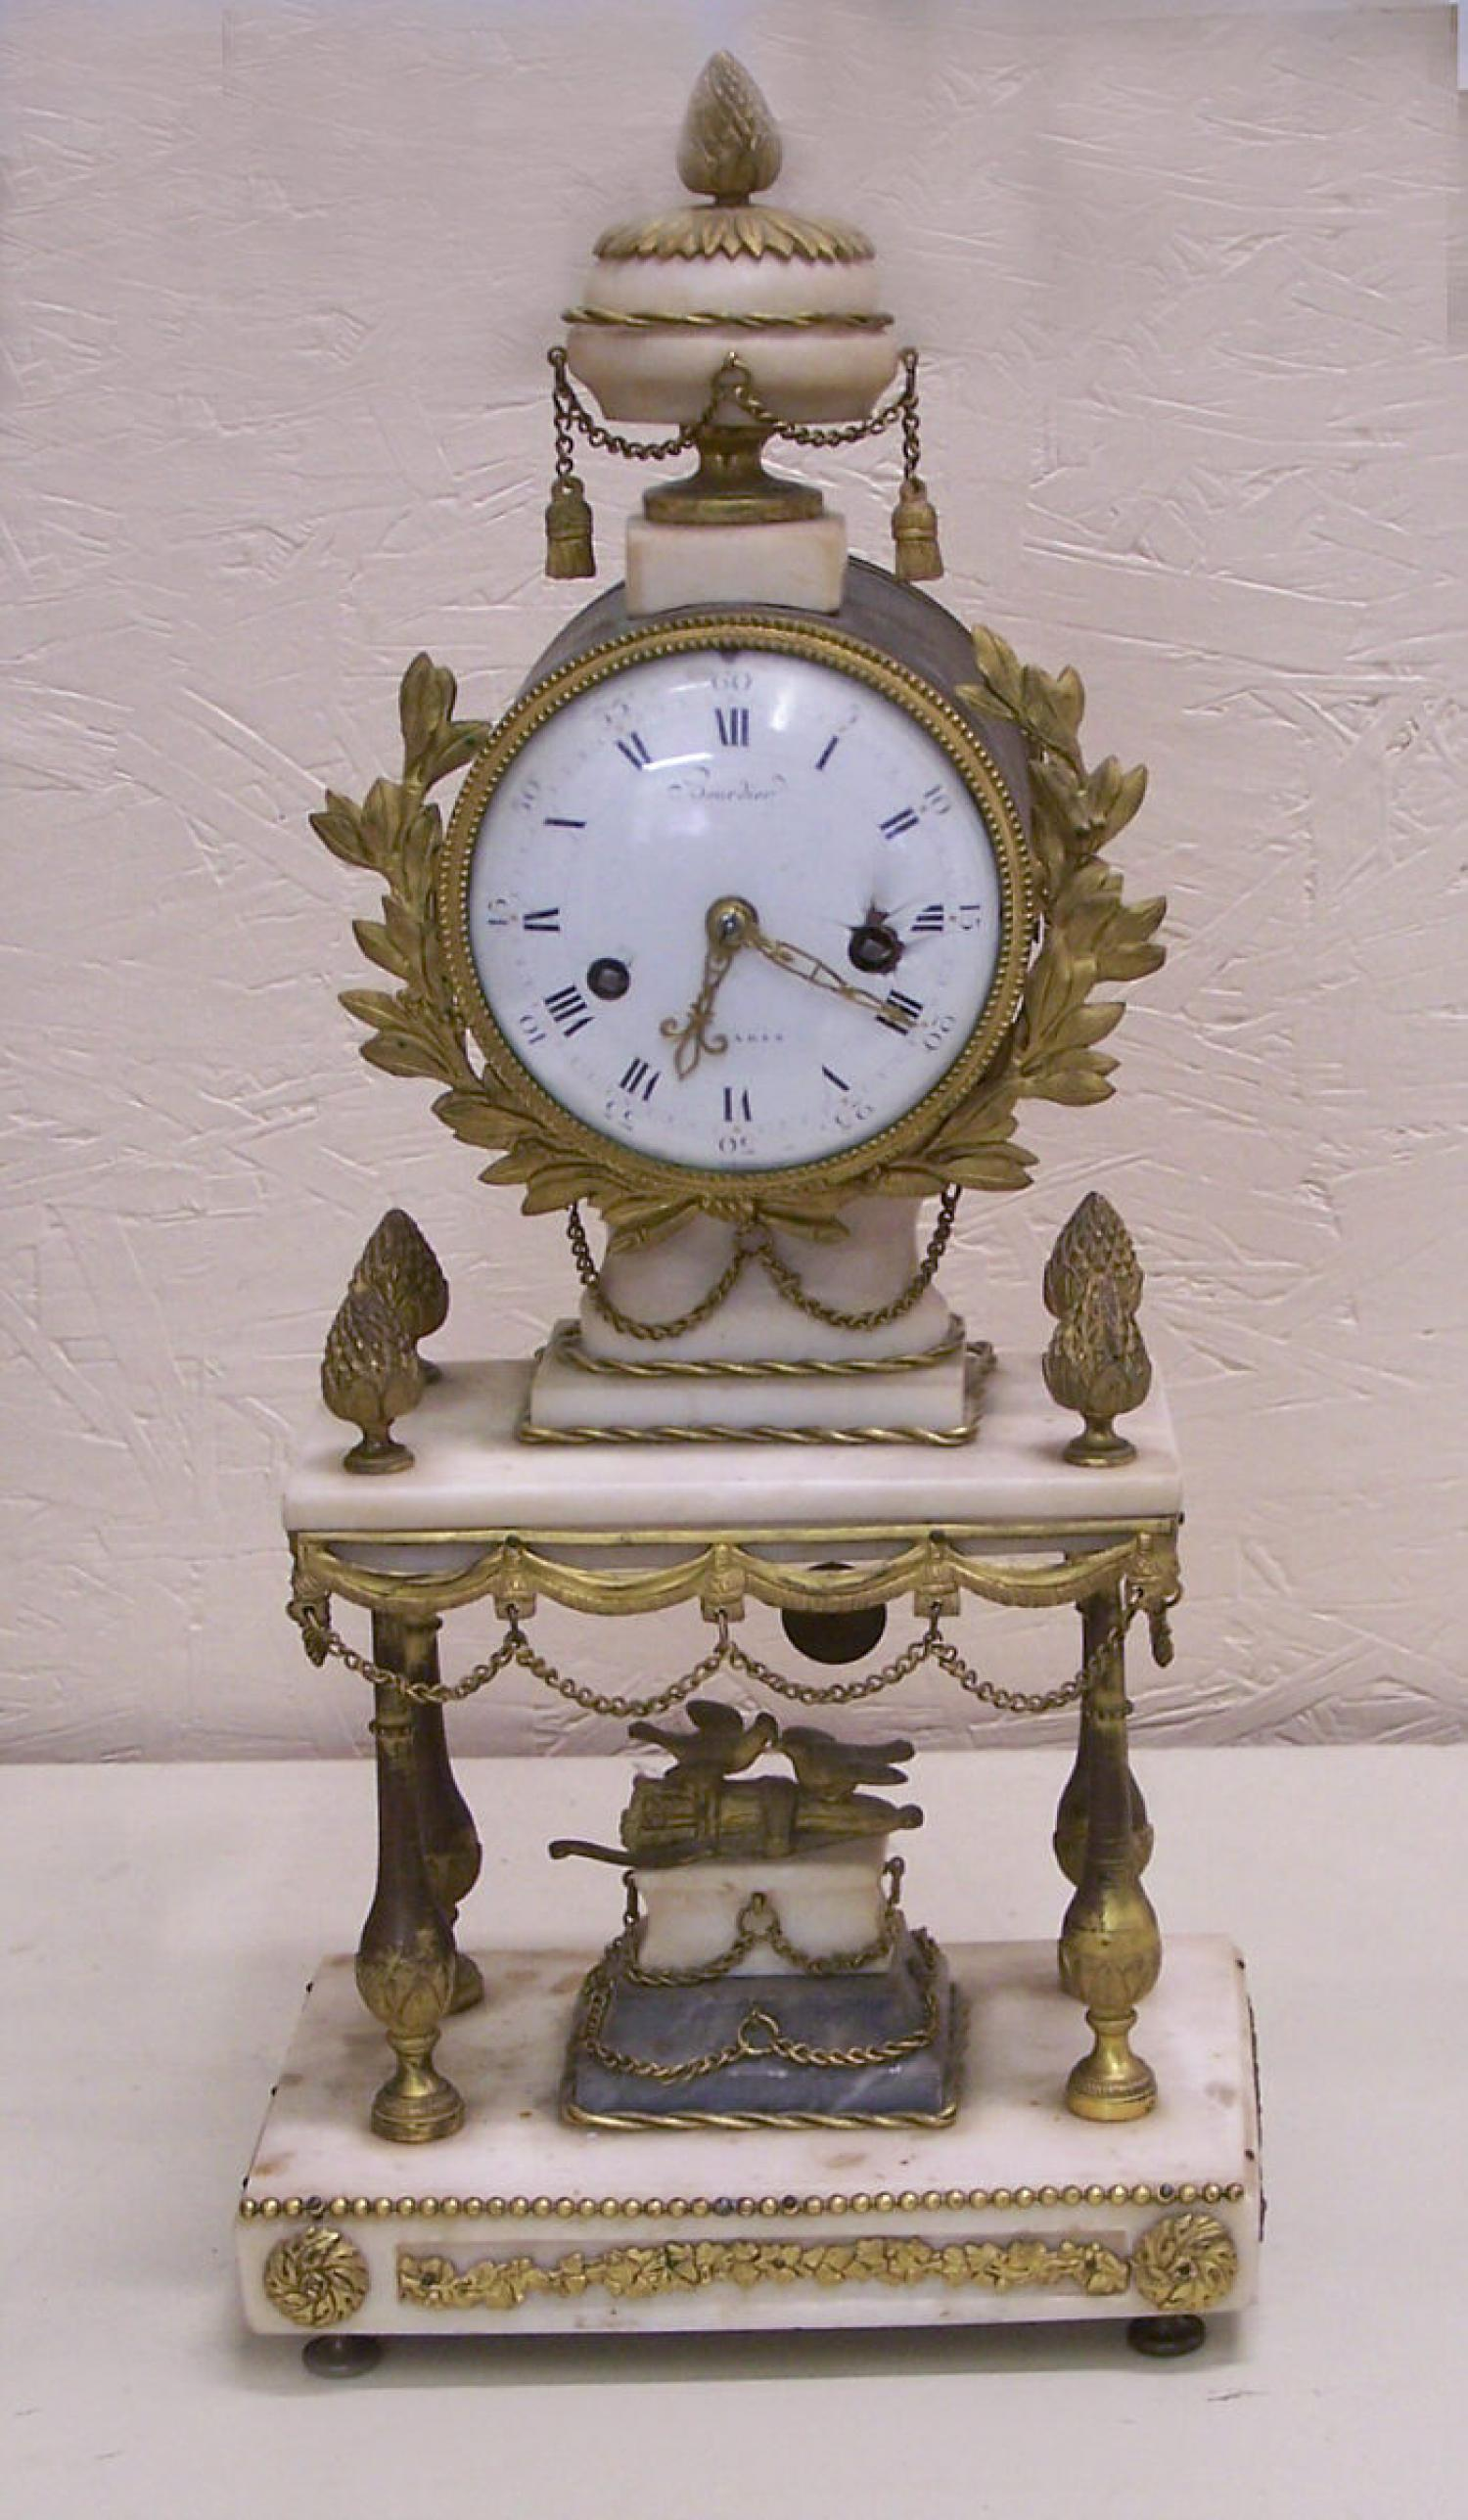 Early 20th century French mantle clock by Bourdier Paris c1820